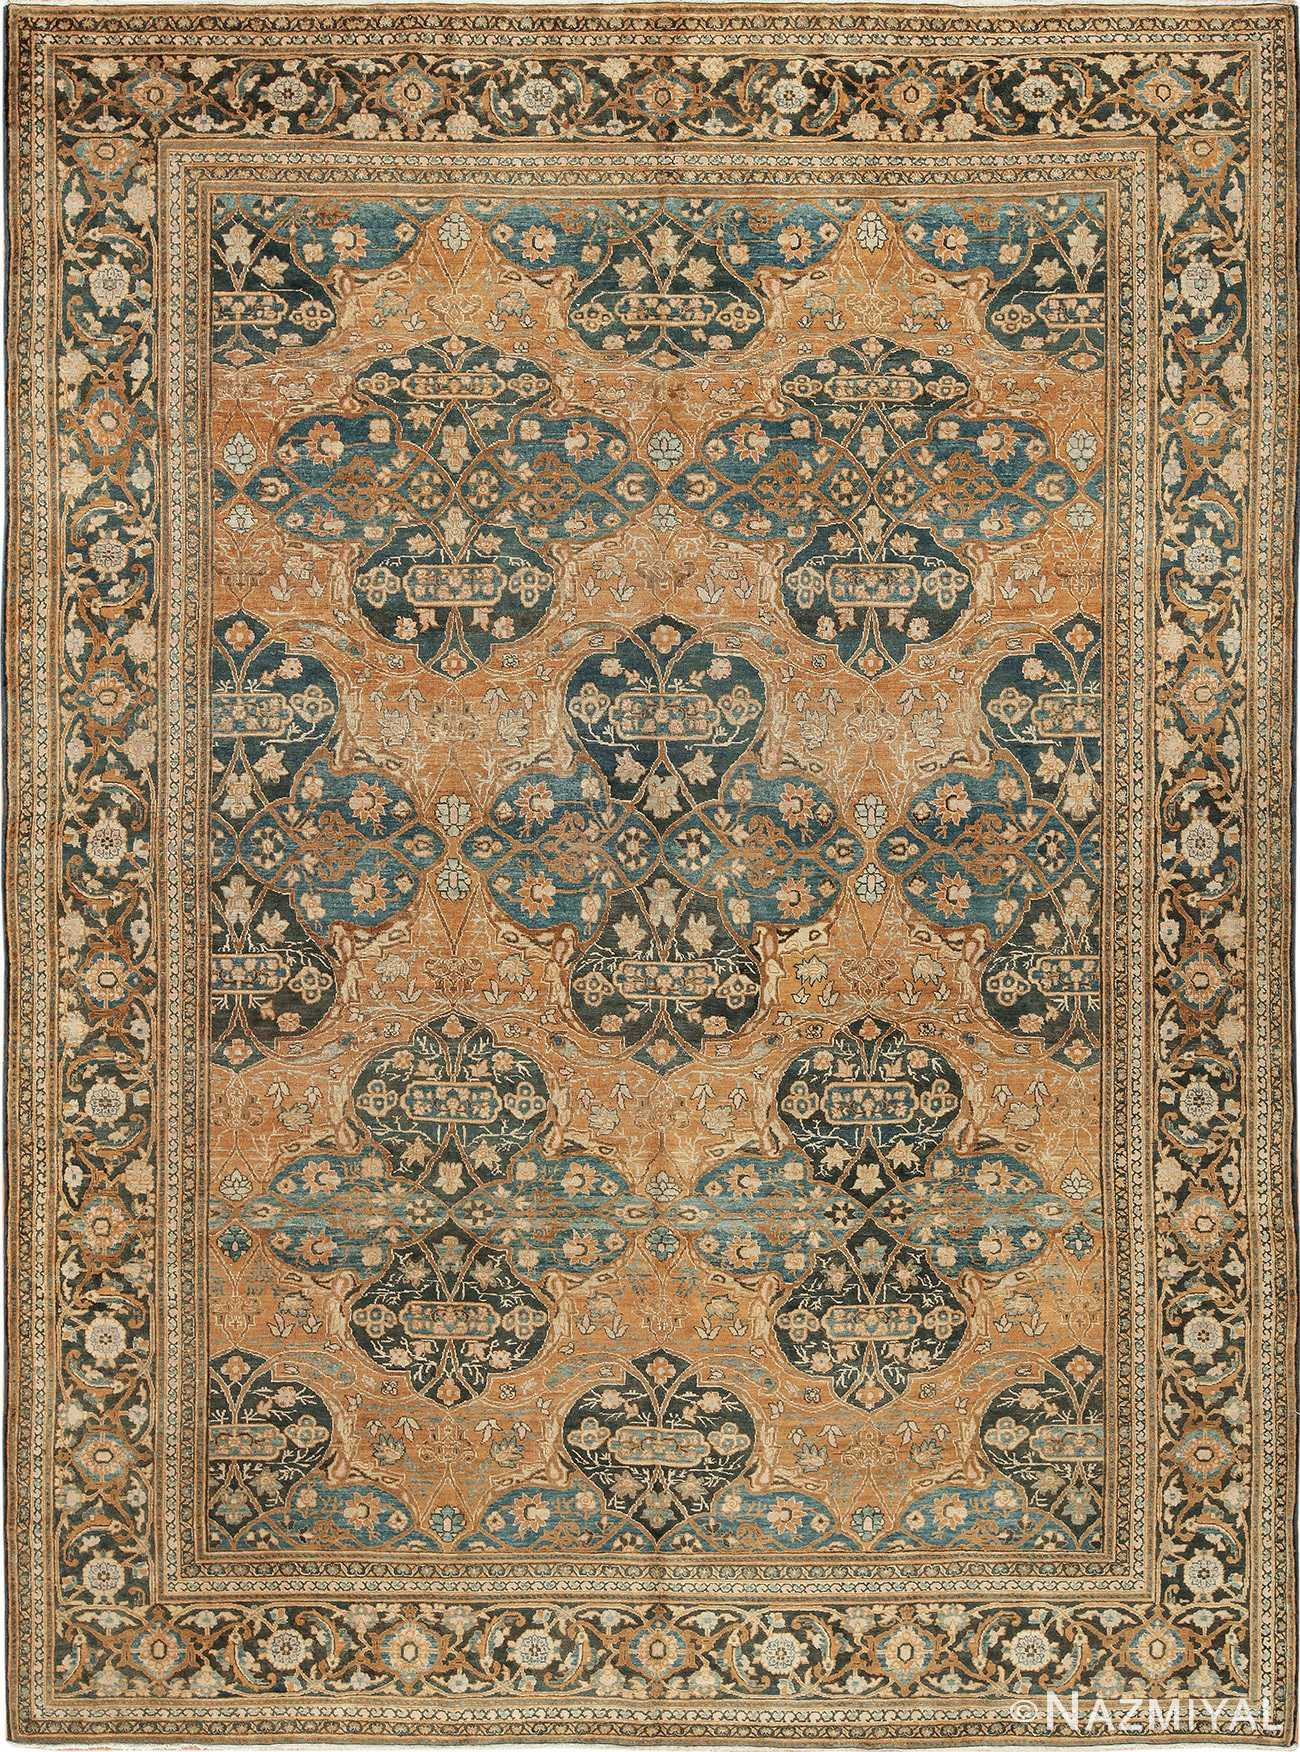 Antique Neutral Earth Tone Color Persian Khorassan Rug 49708 by Nazmiyal